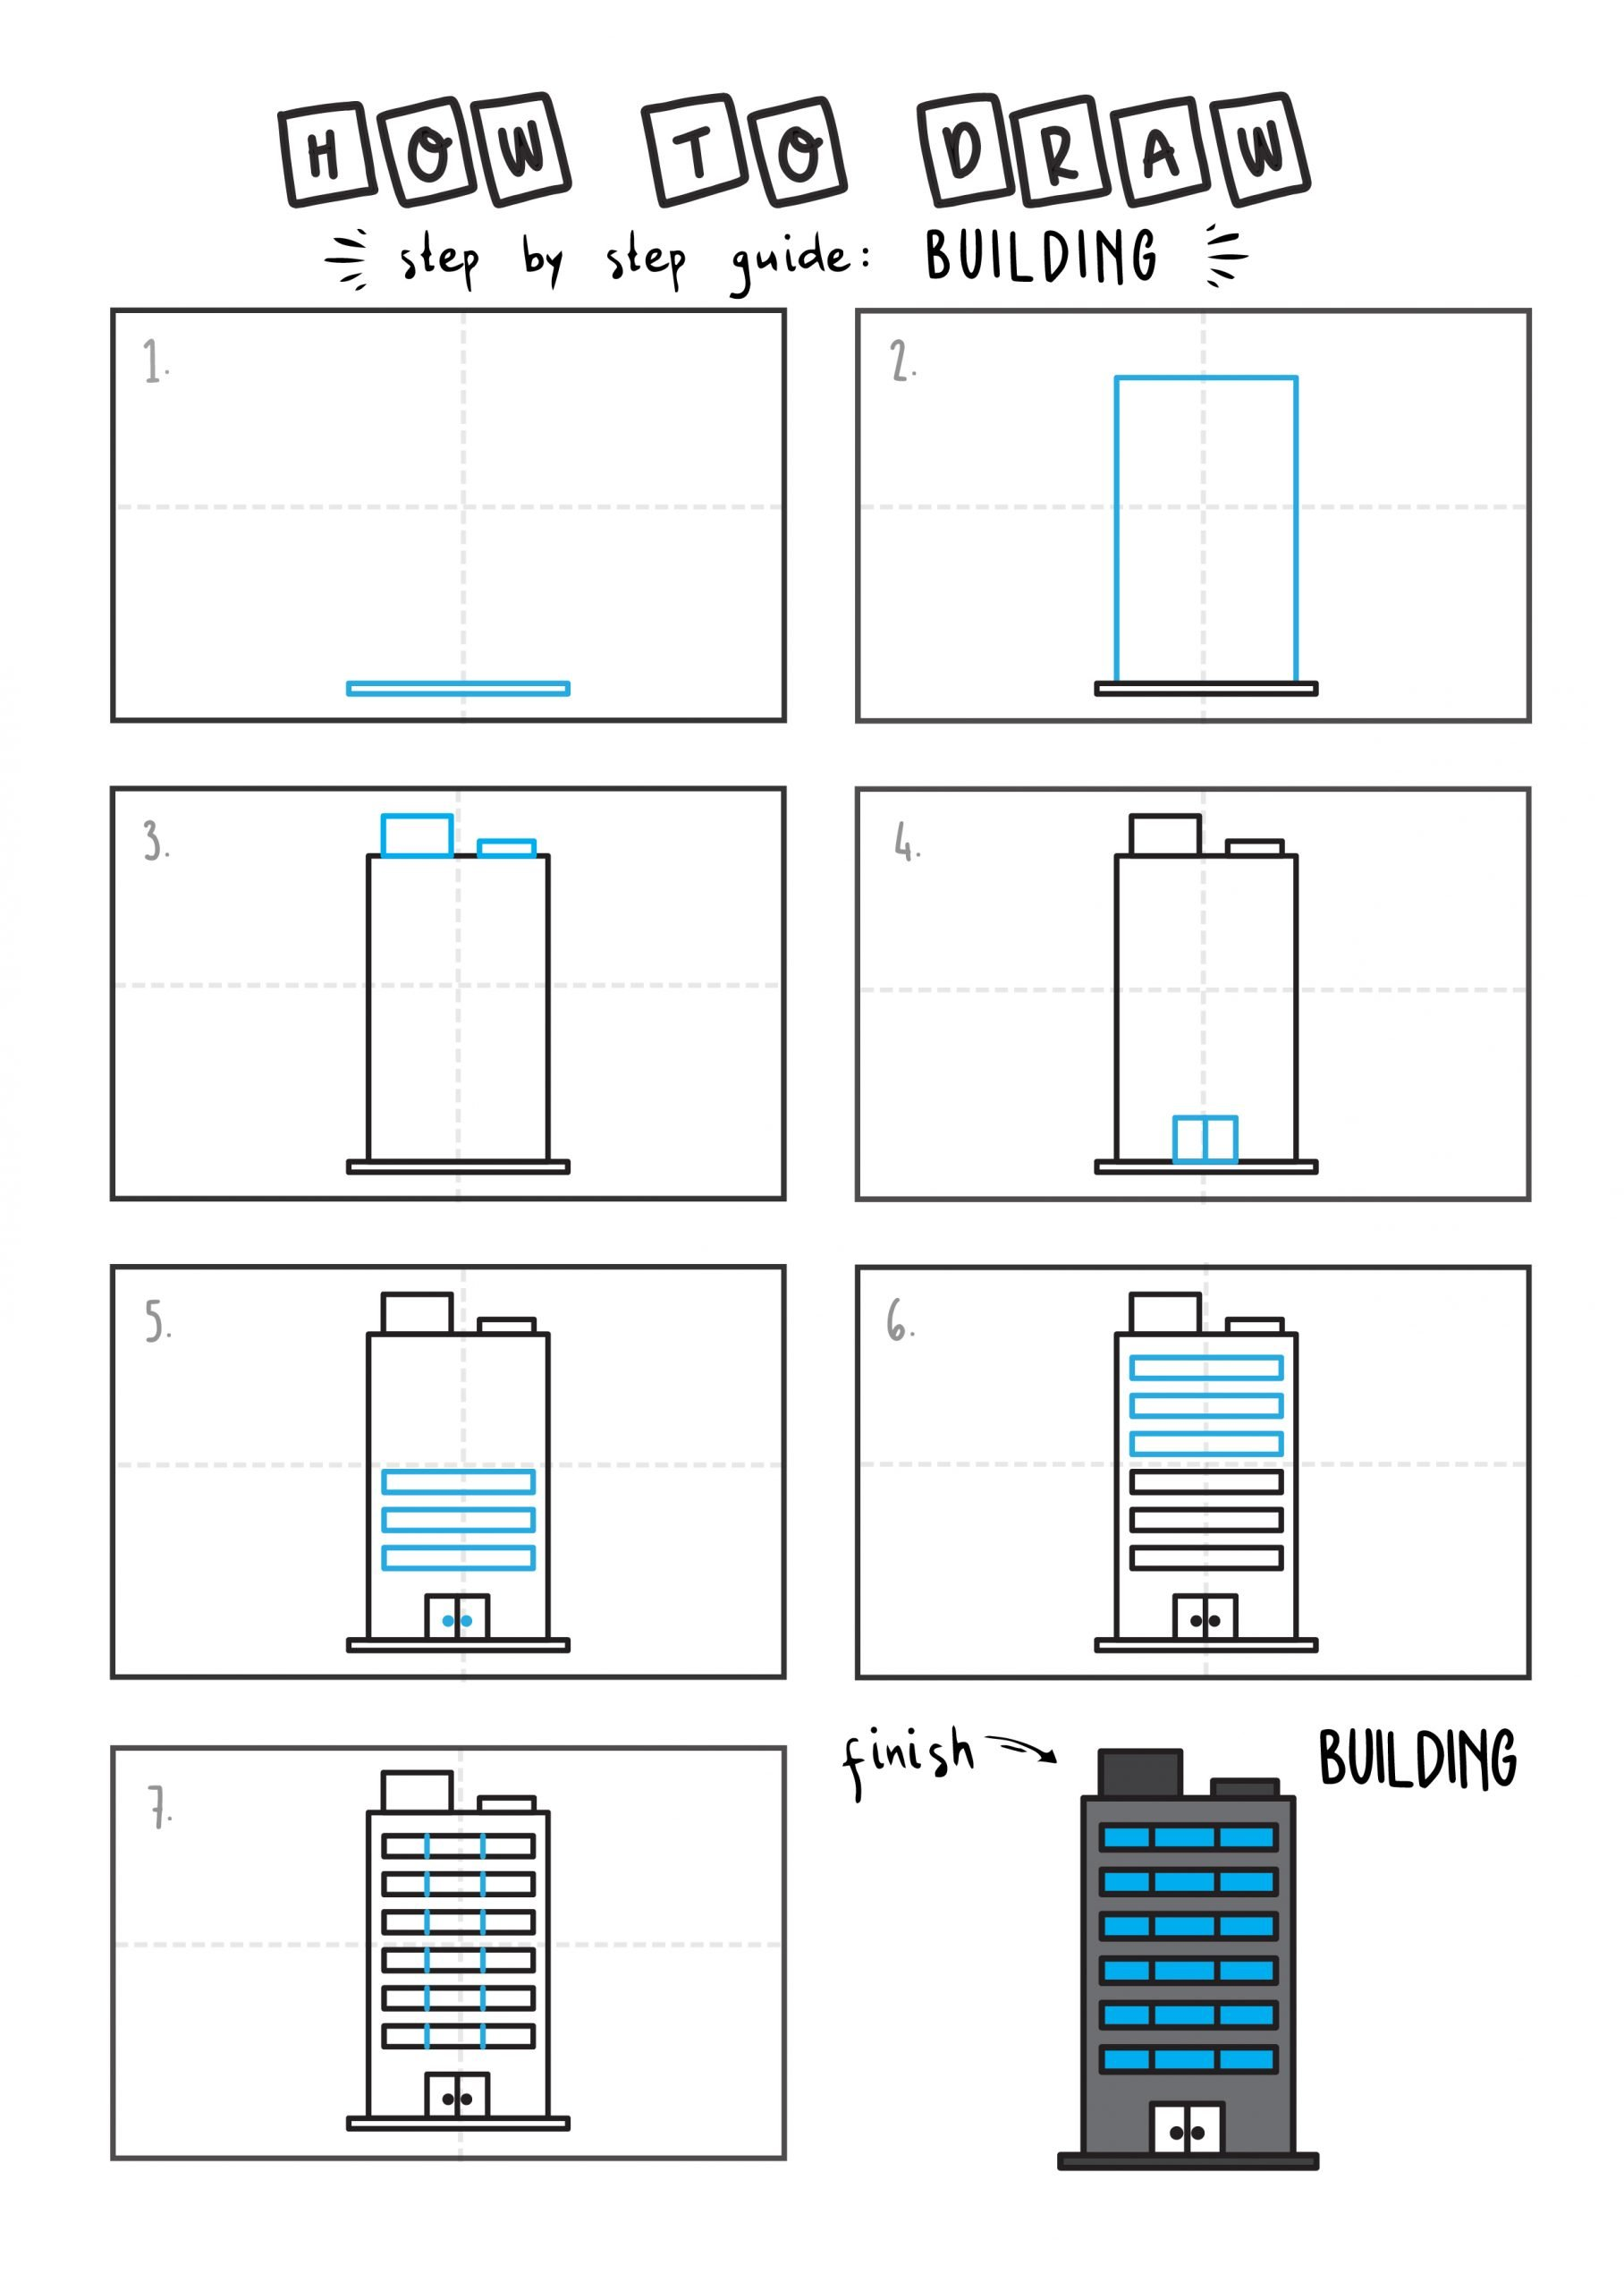 How to draw a cartoon building step by step for children EAsy simple tutorial